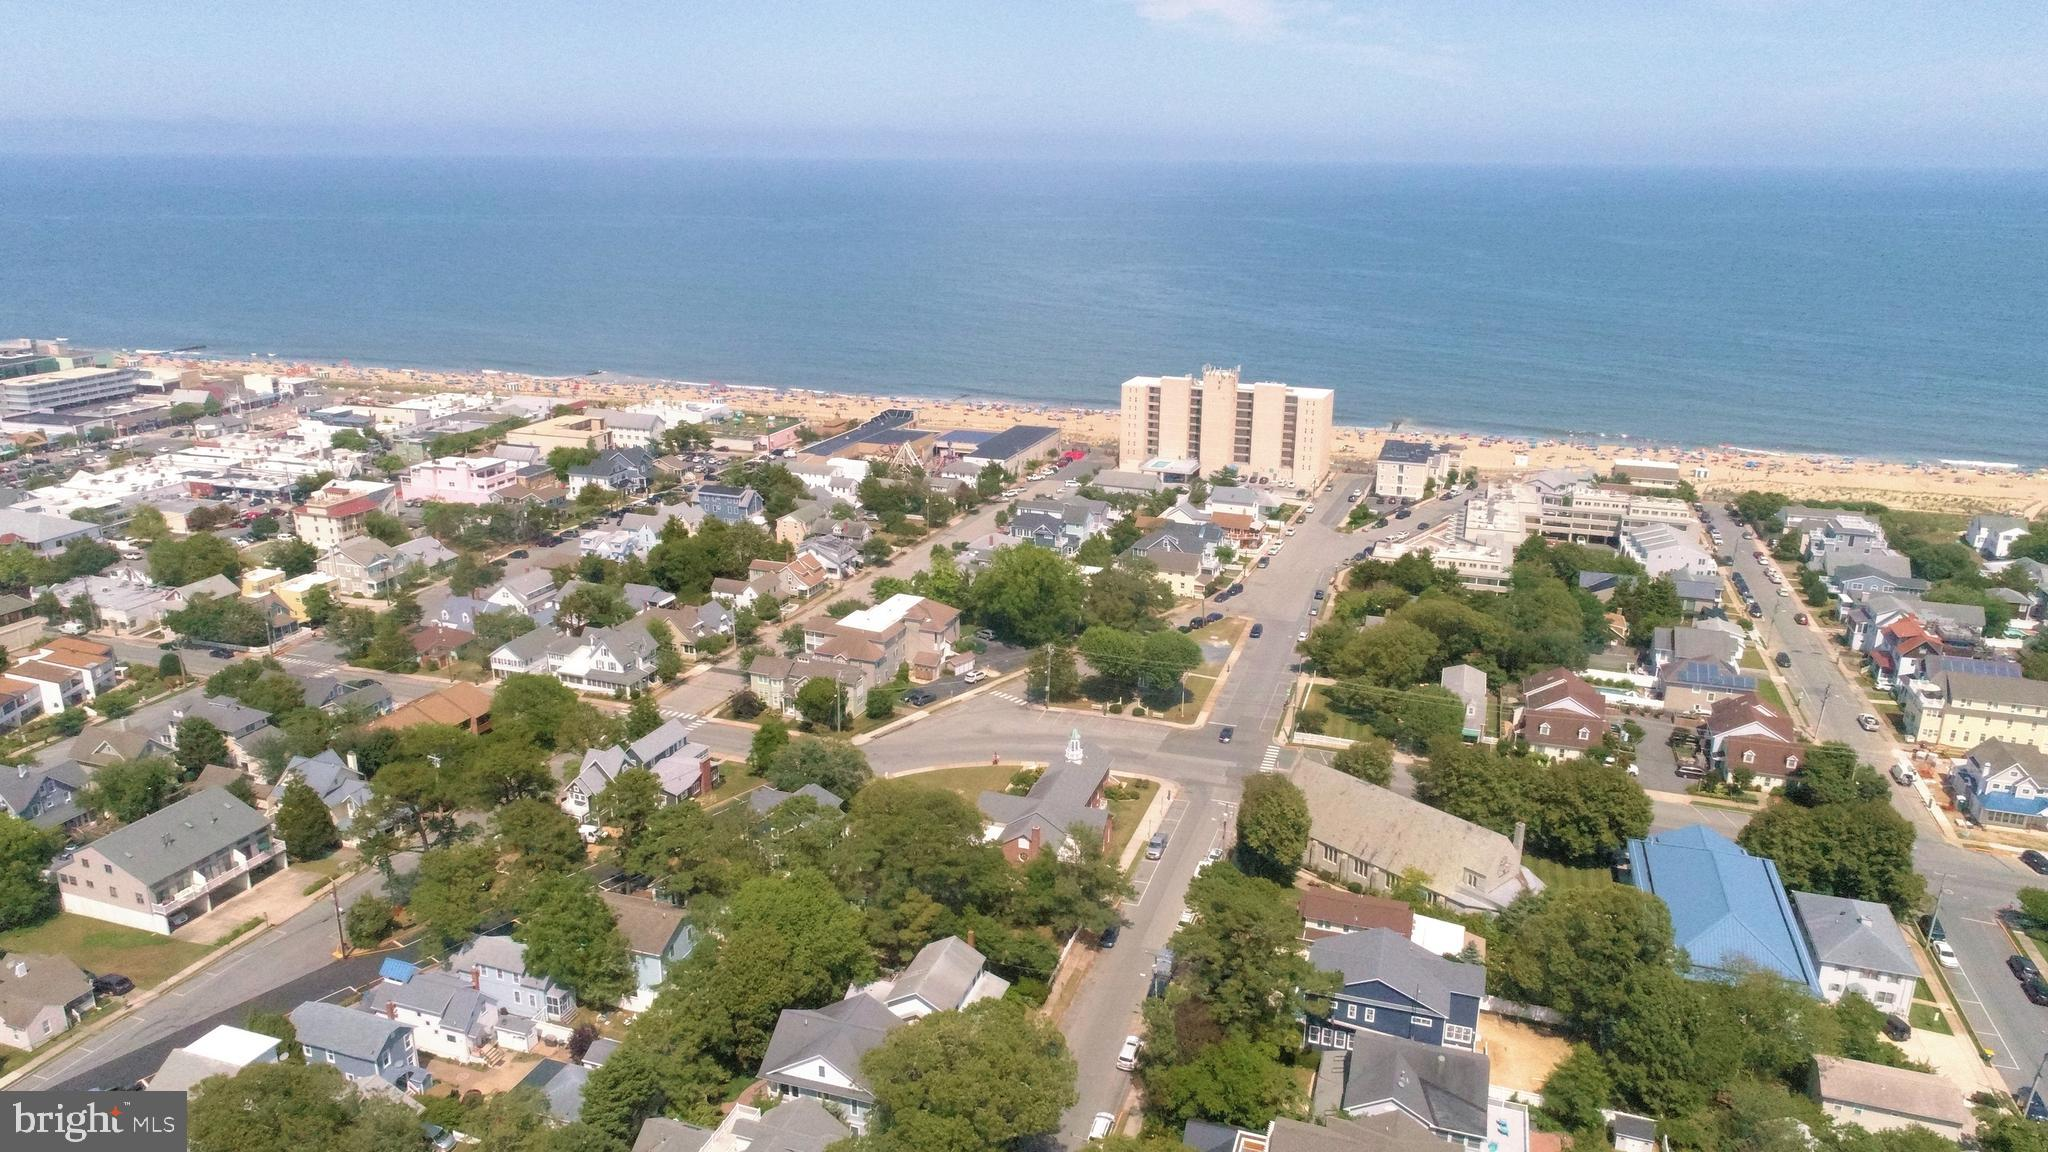 Just a block to the Atlantic Ocean and so close to all things Rehoboth, this new to be built pool home will delight family and friends or will be a wonderful rental property with all the needs and wants checked off the wish list.  Fall 2021 completion. Plans to be modified slightly.